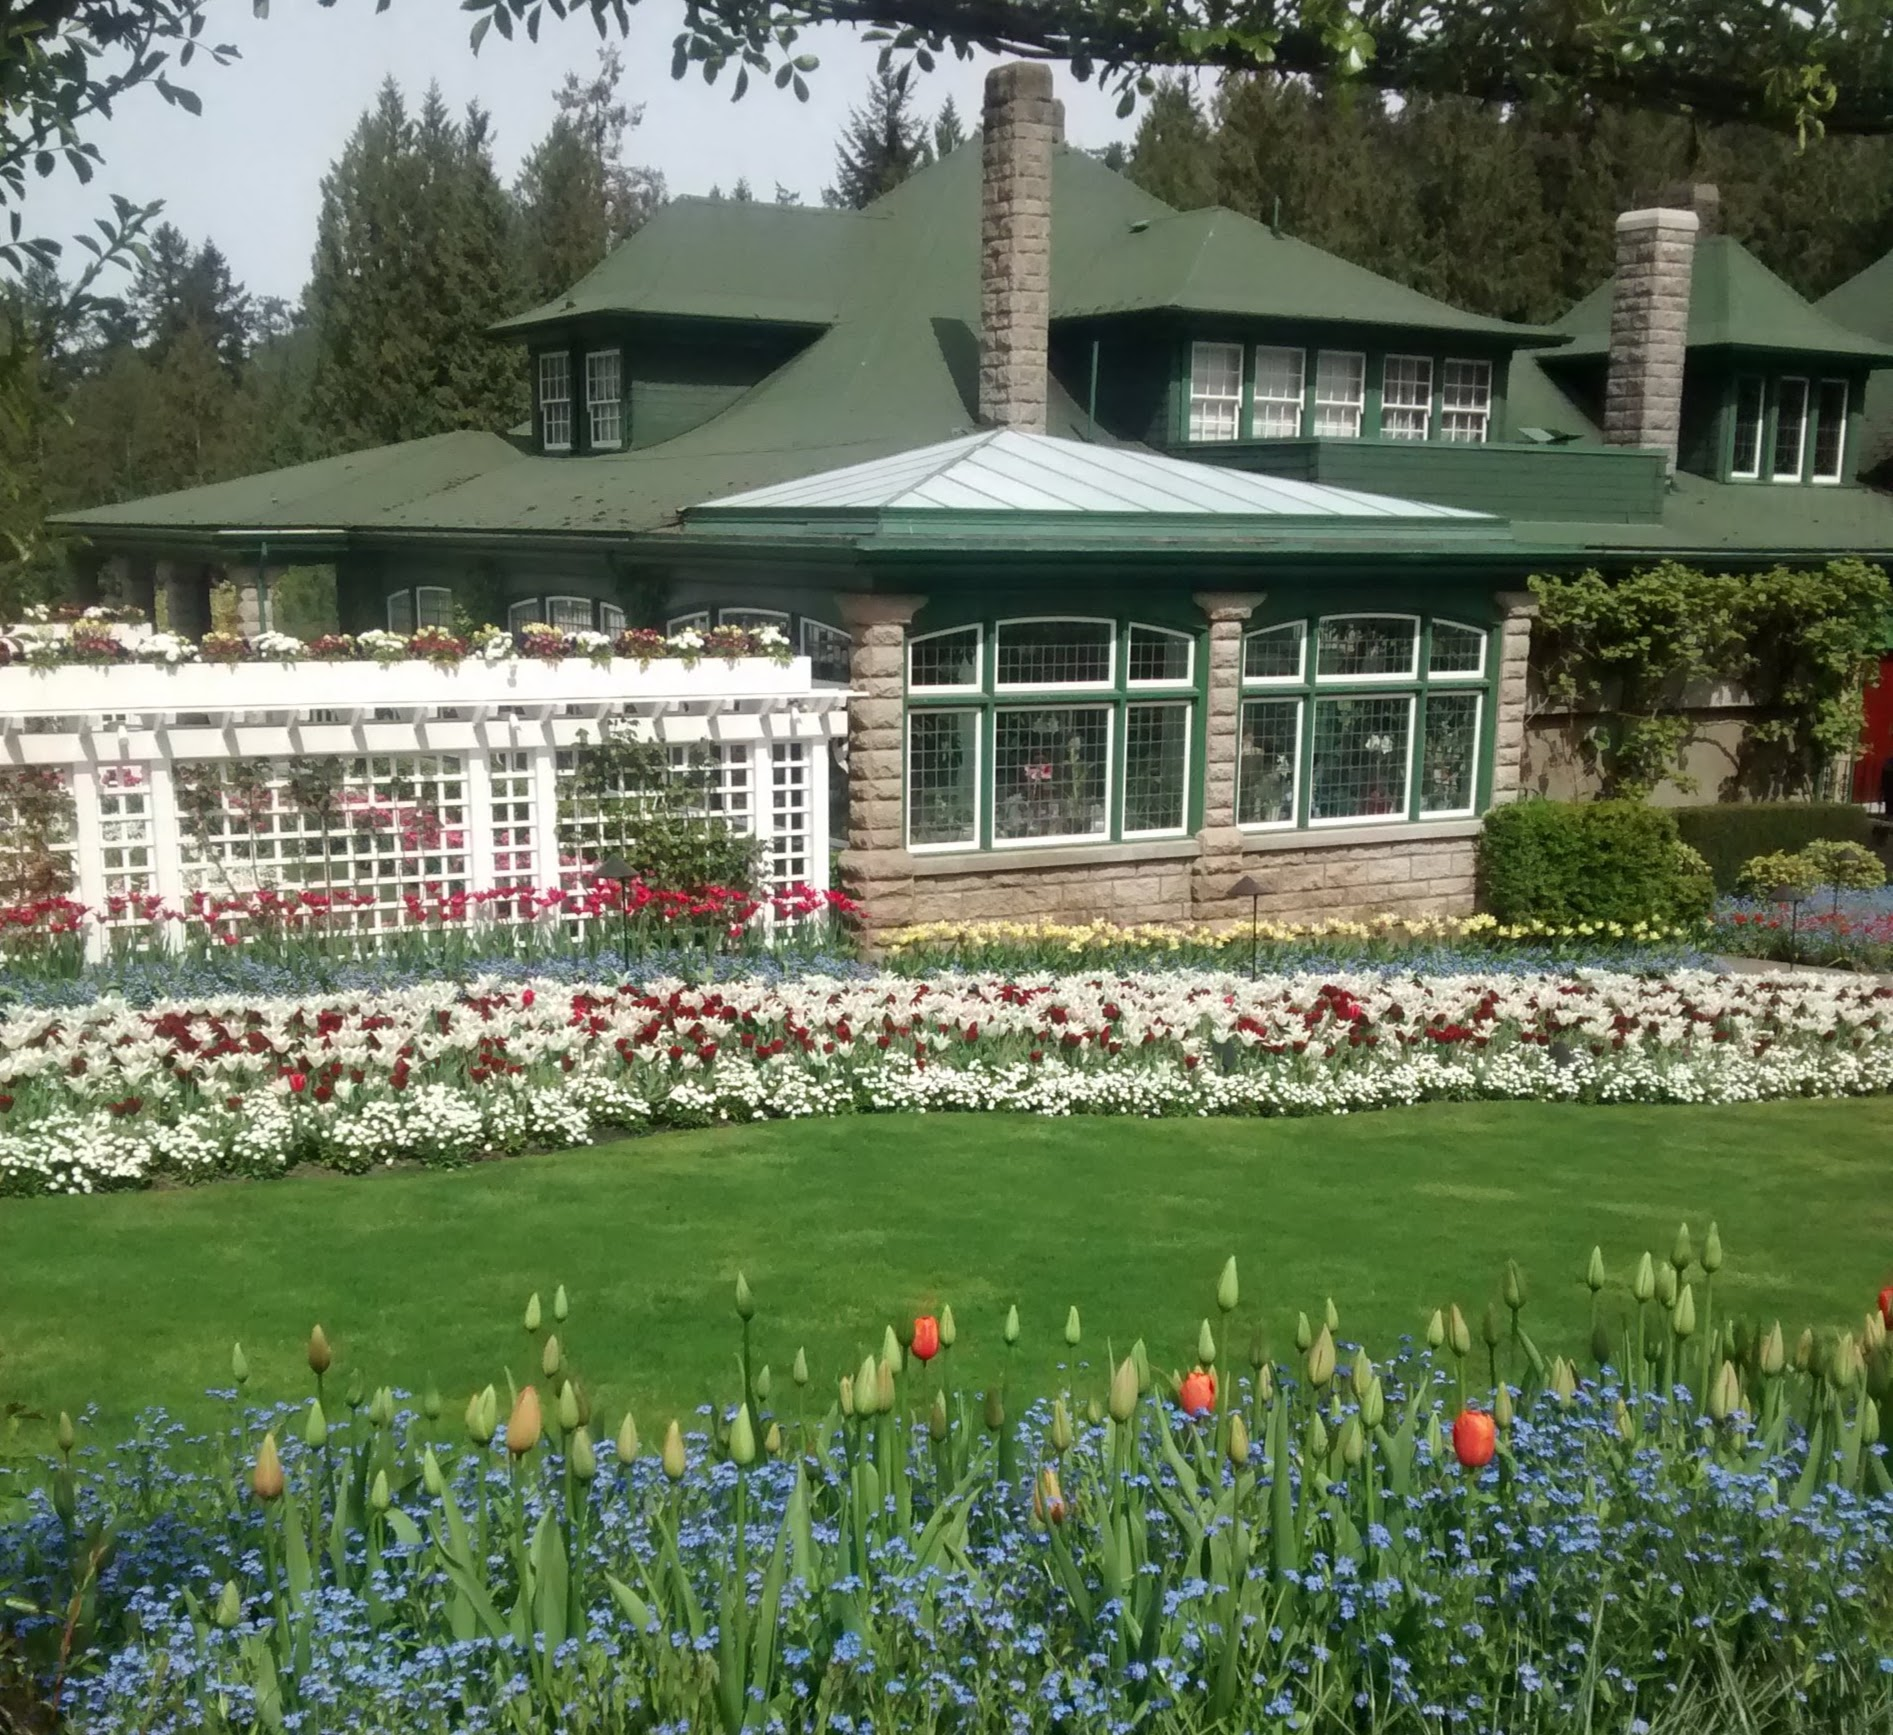 A historic home surrounded by formal gardens at Butchart Gardens in Victoria, a popular day trip from Seattle